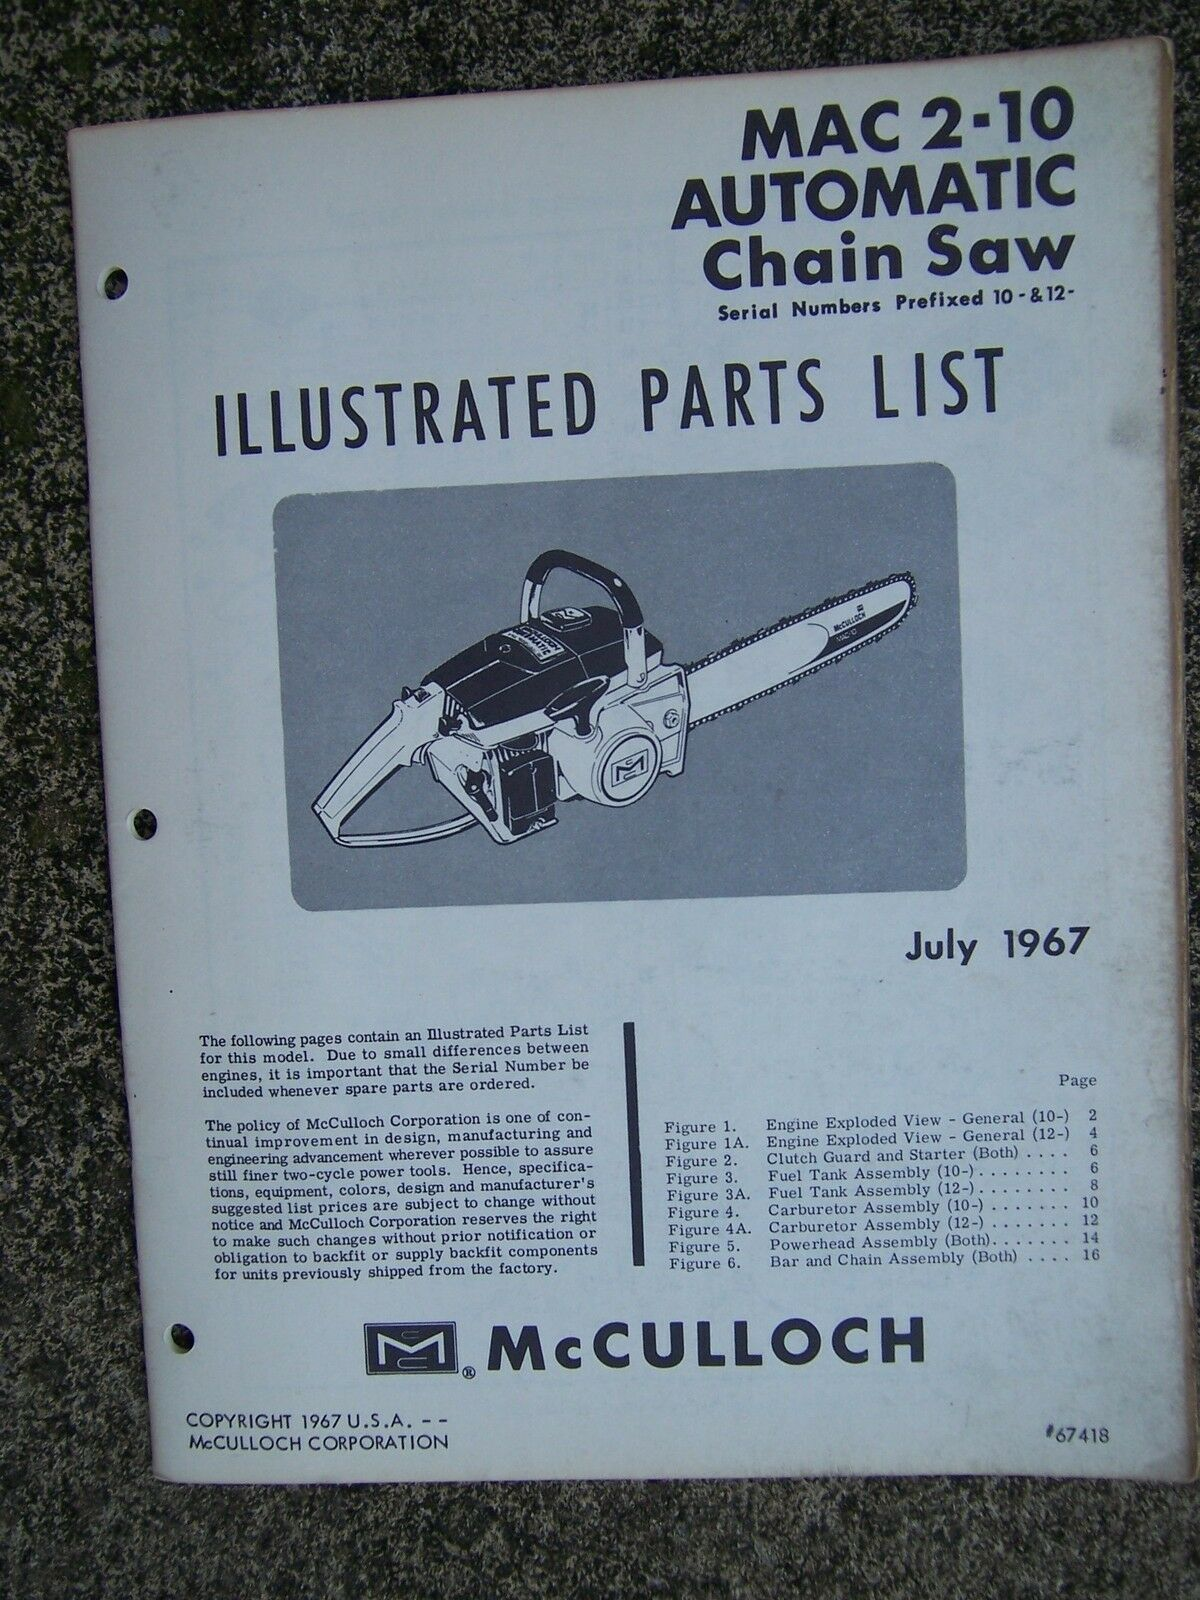 hight resolution of 1967 mcculloch mac 2 10 automatic chain saw illustrated parts list power tool v